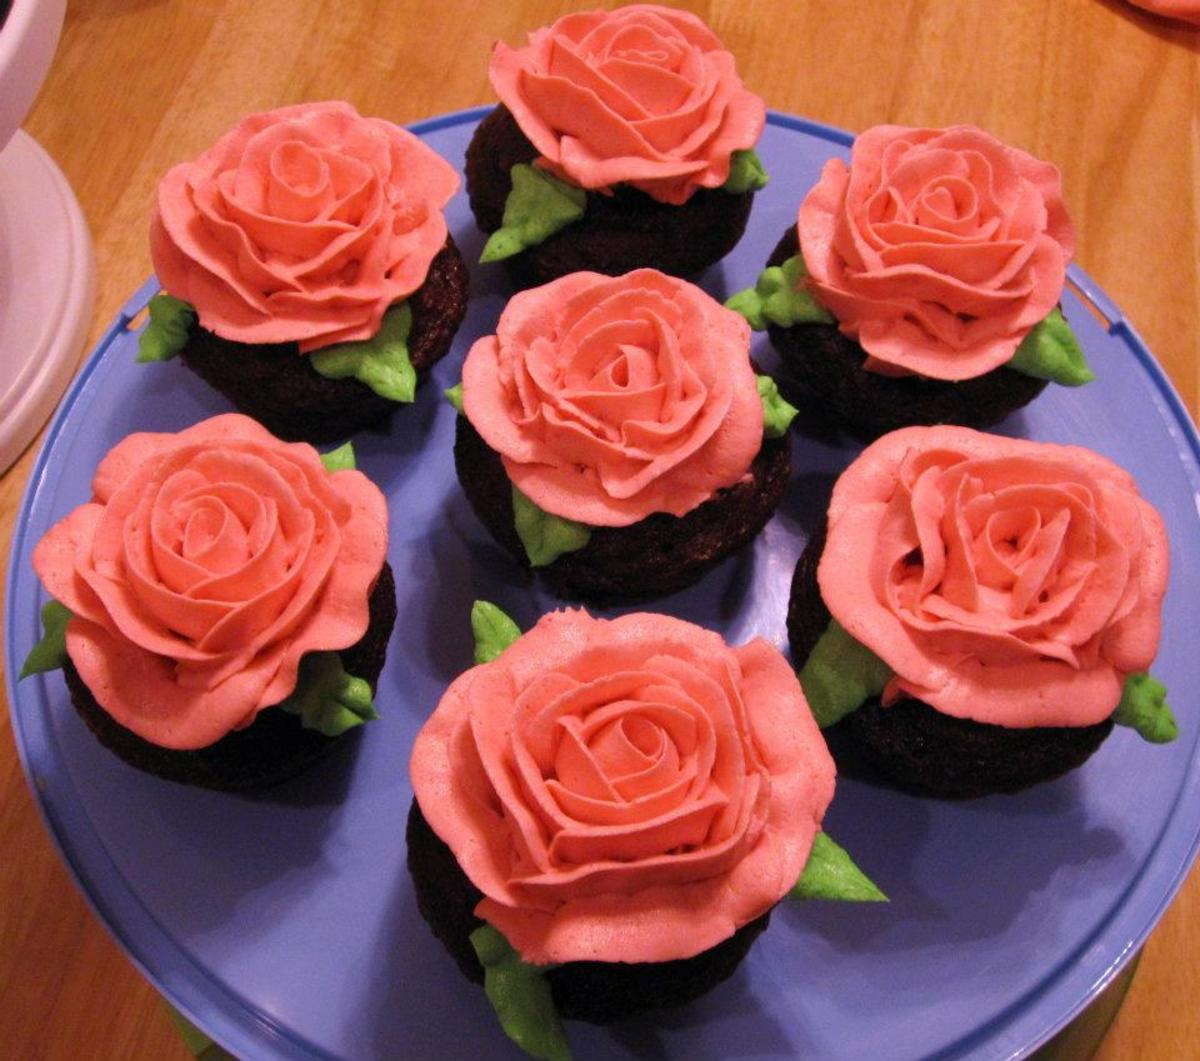 Roses made from stiff consistency buttercream